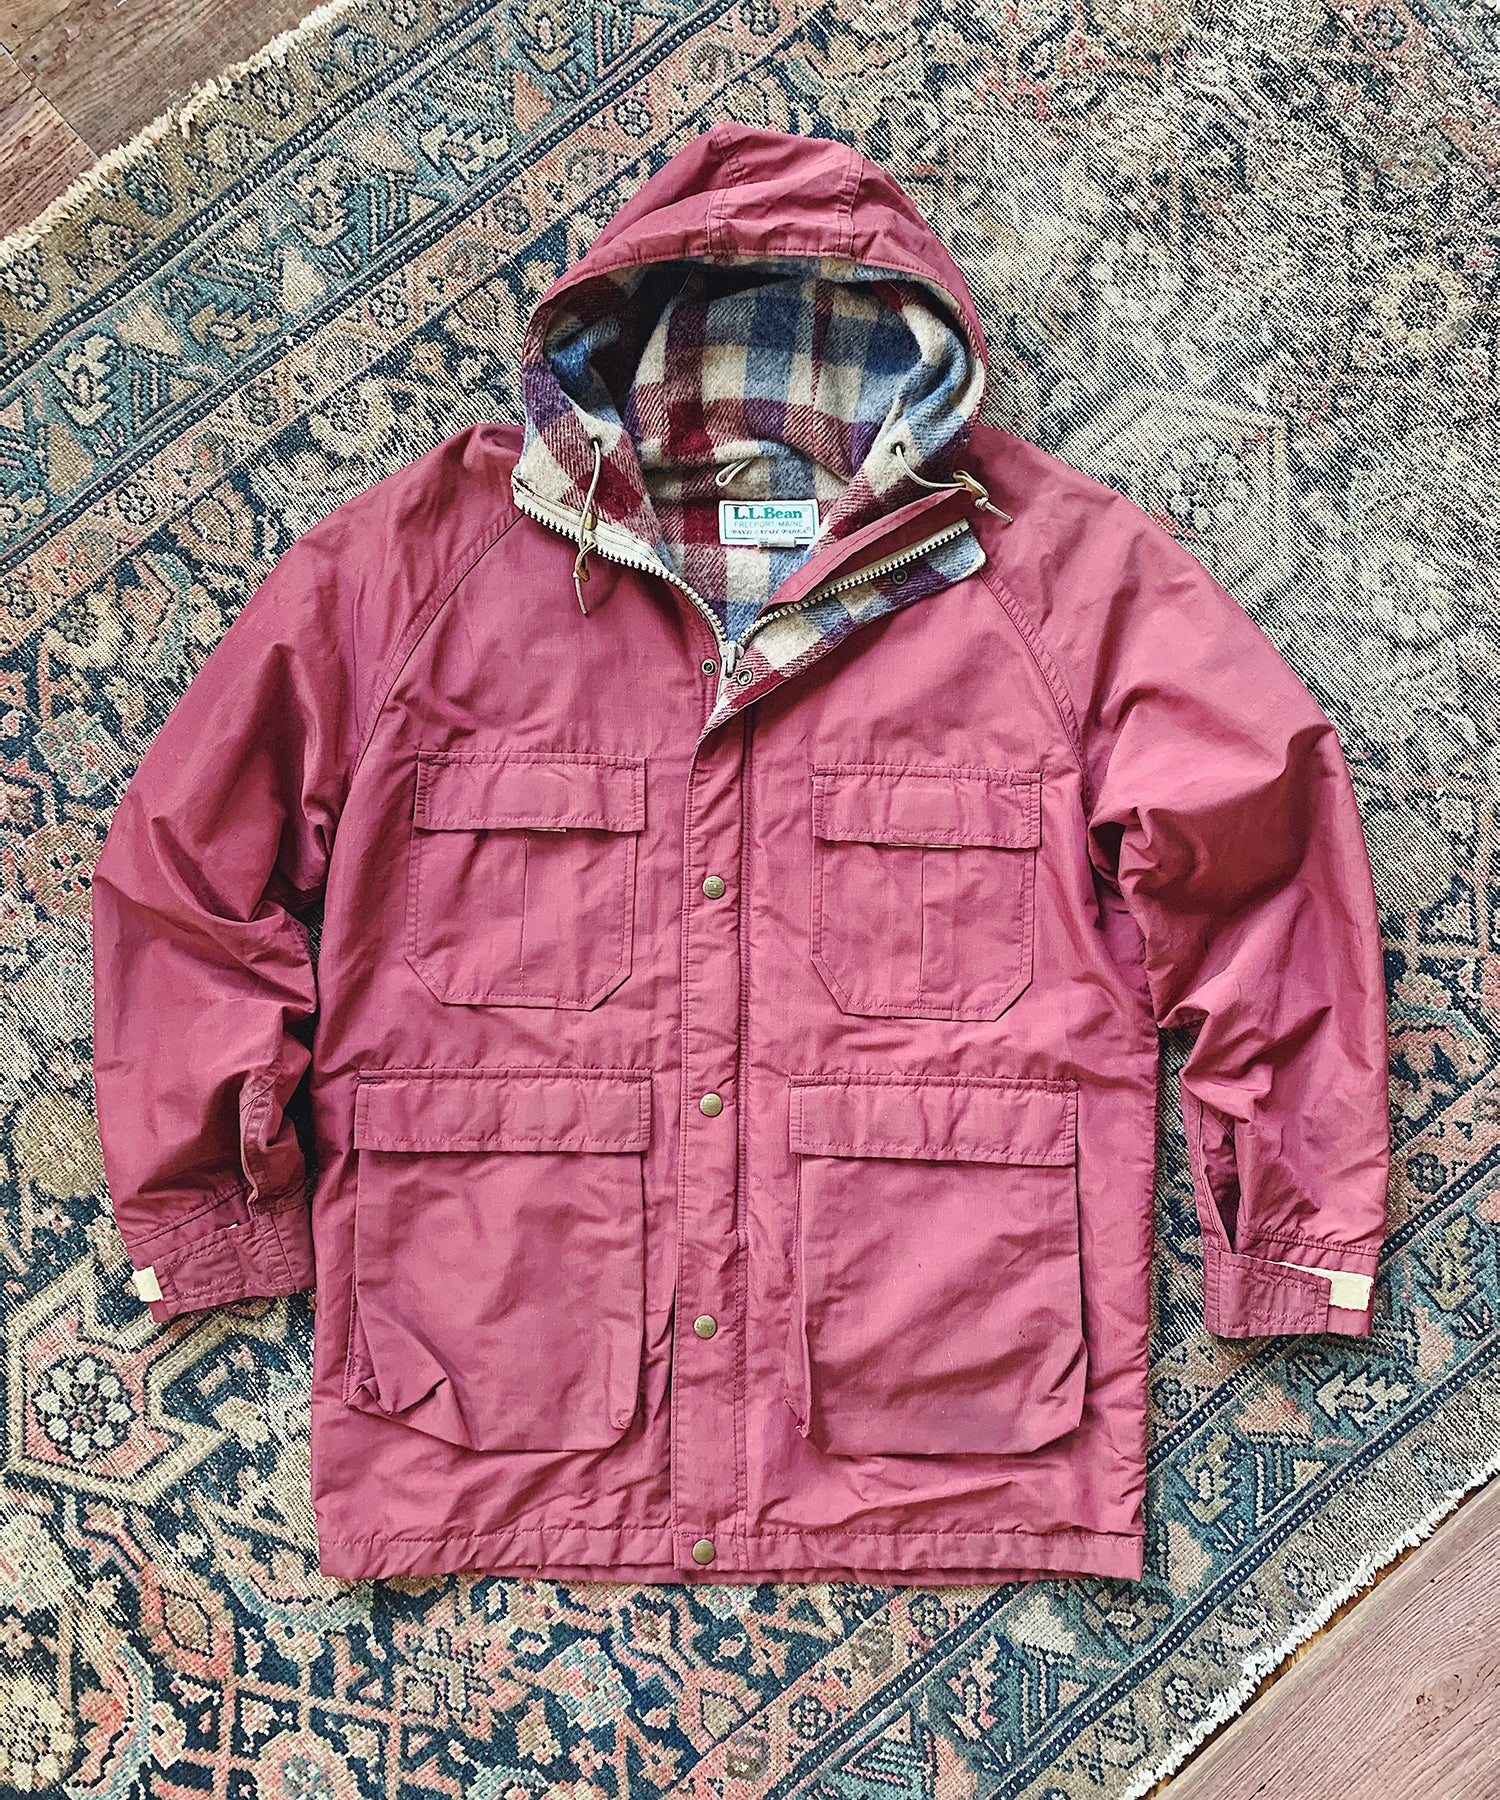 Item #8 -  Todd Snyder x Wooden Sleepers 1980's Baxter State Parka in Burgundy - SOLD OUT